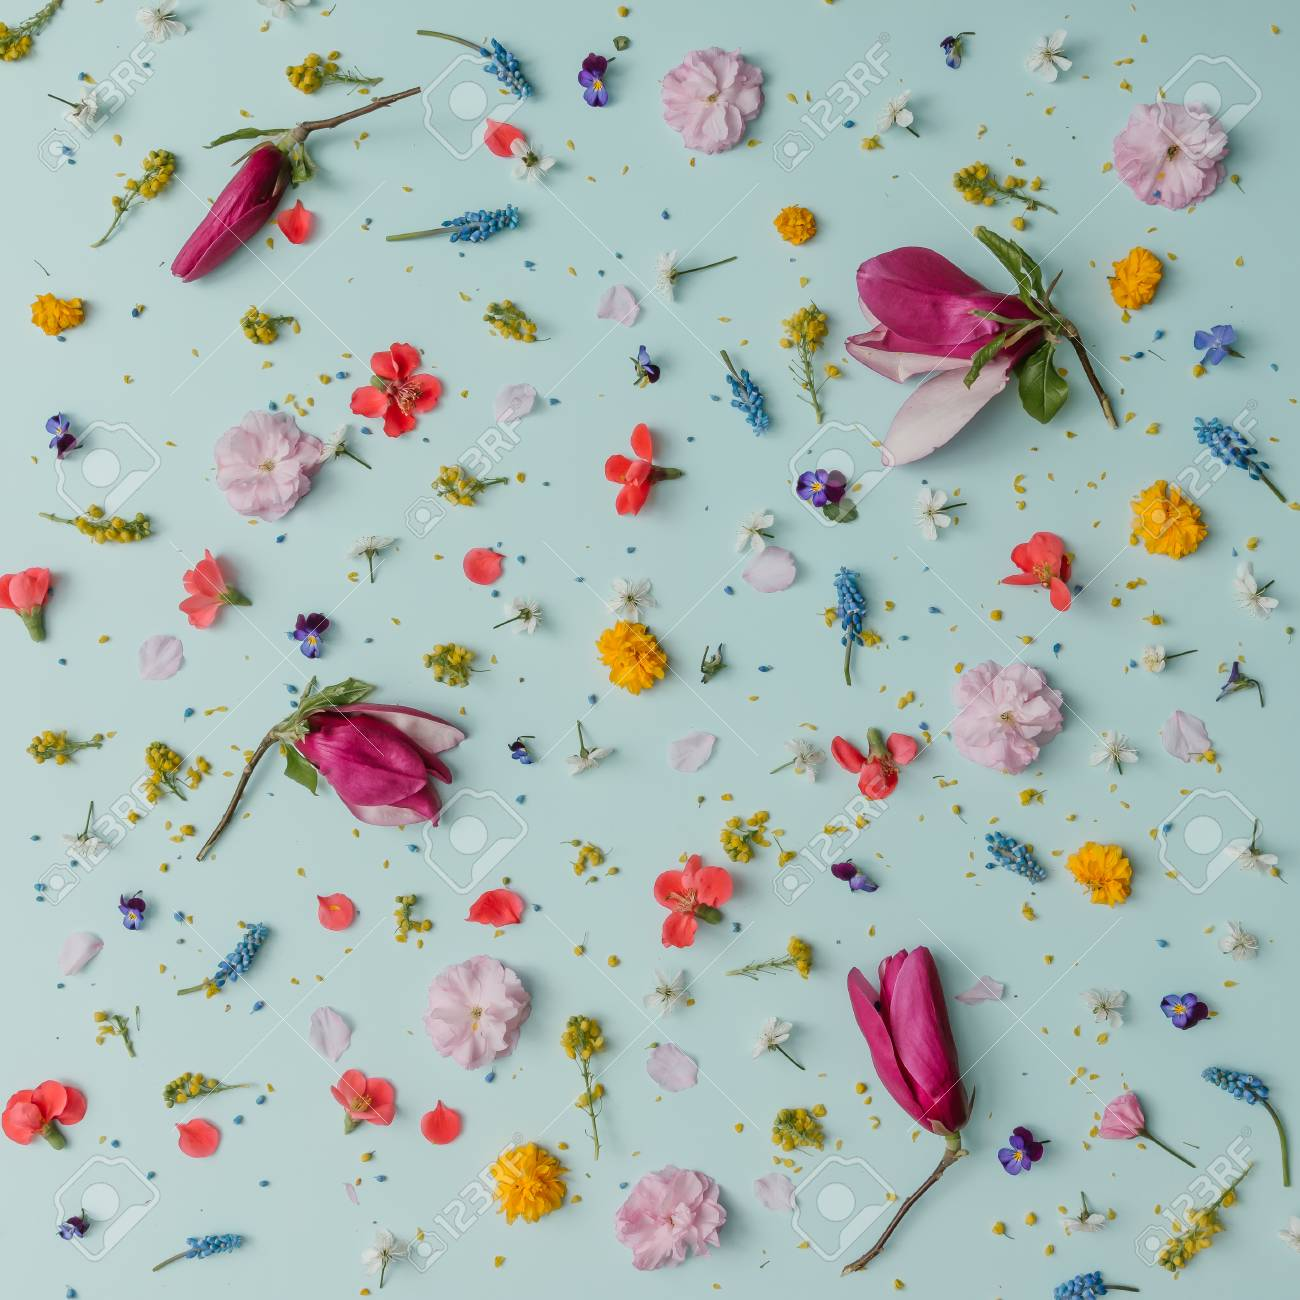 Creative Pattern Made Of Colorful Spring Flowers Minimal Style